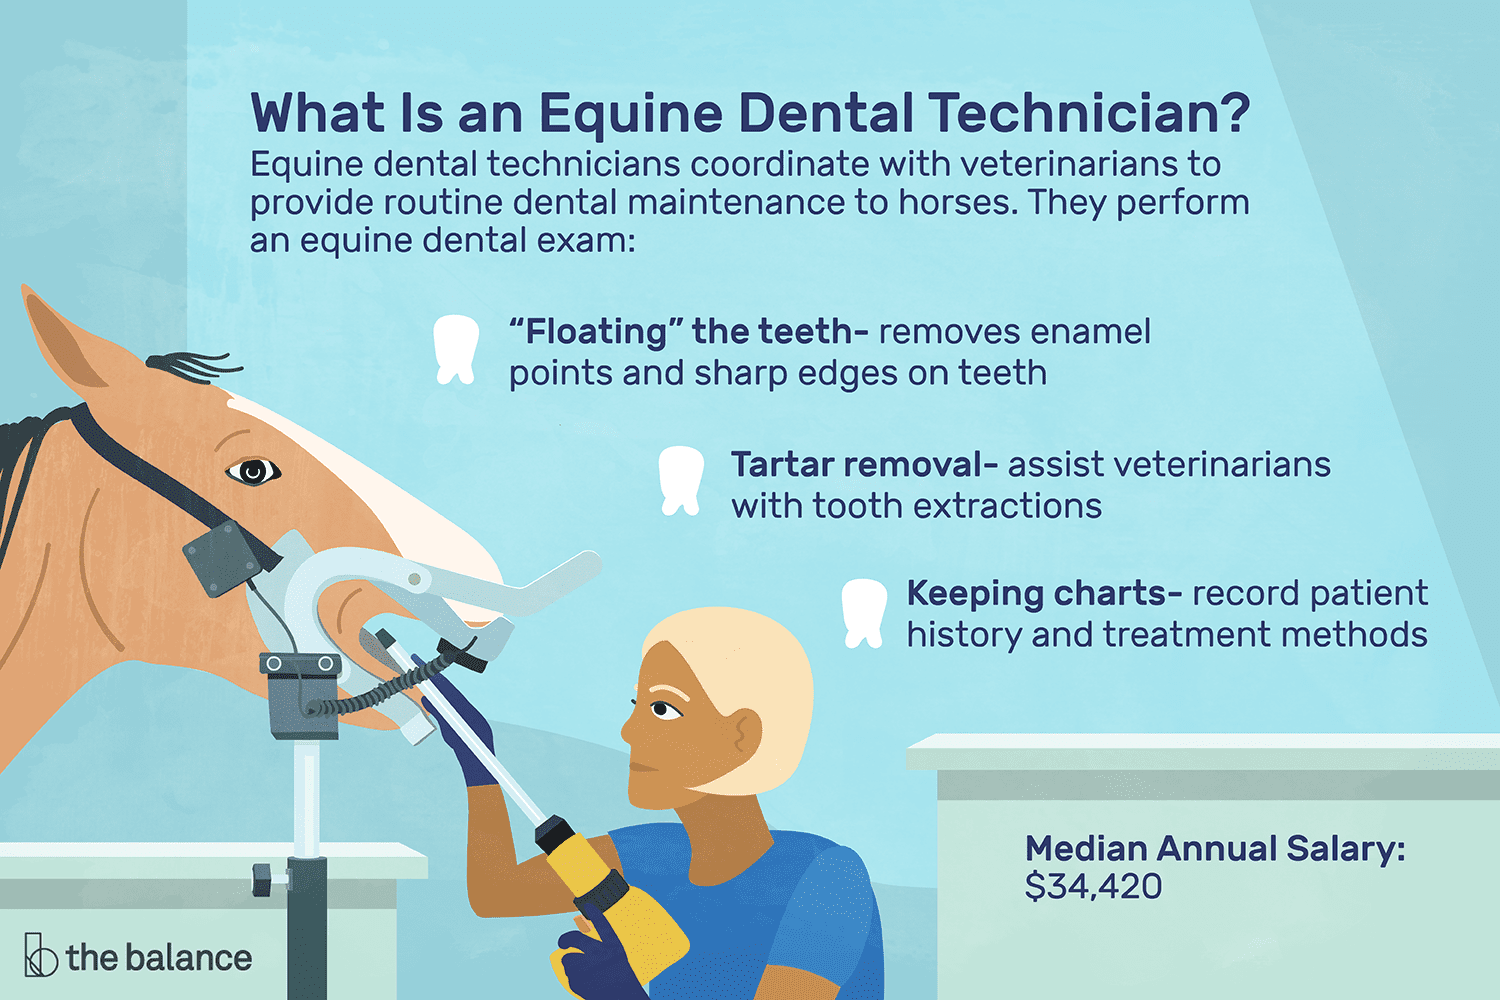 Equine Dental Technician Job Description: Salary, Skills, & More